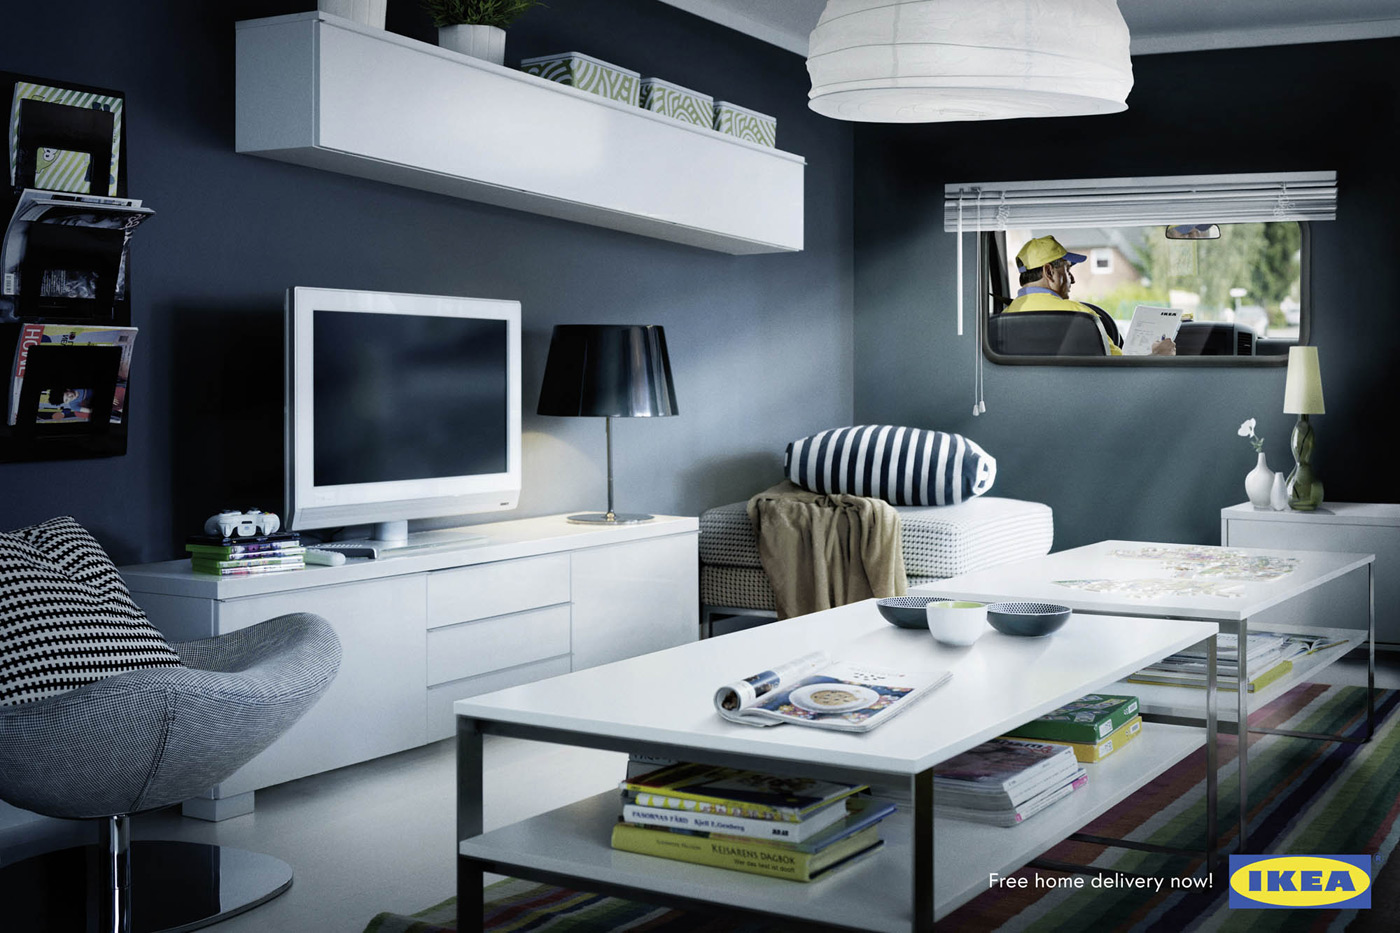 ikea room delivery the inspiration room. Black Bedroom Furniture Sets. Home Design Ideas